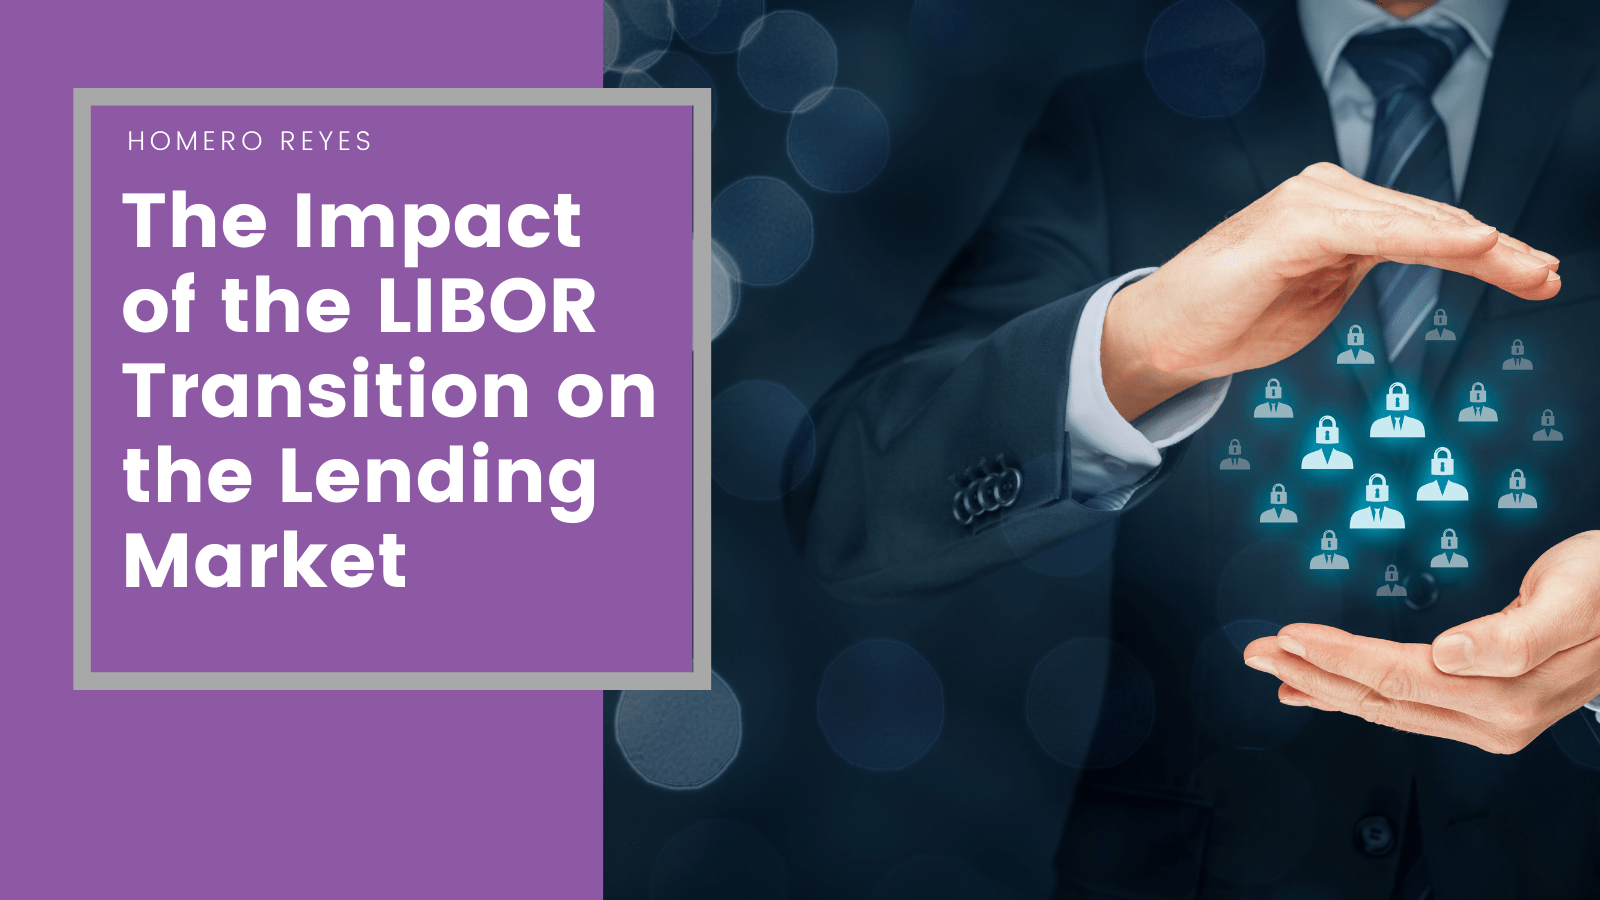 The impact of the LIBOR transition on the lending market